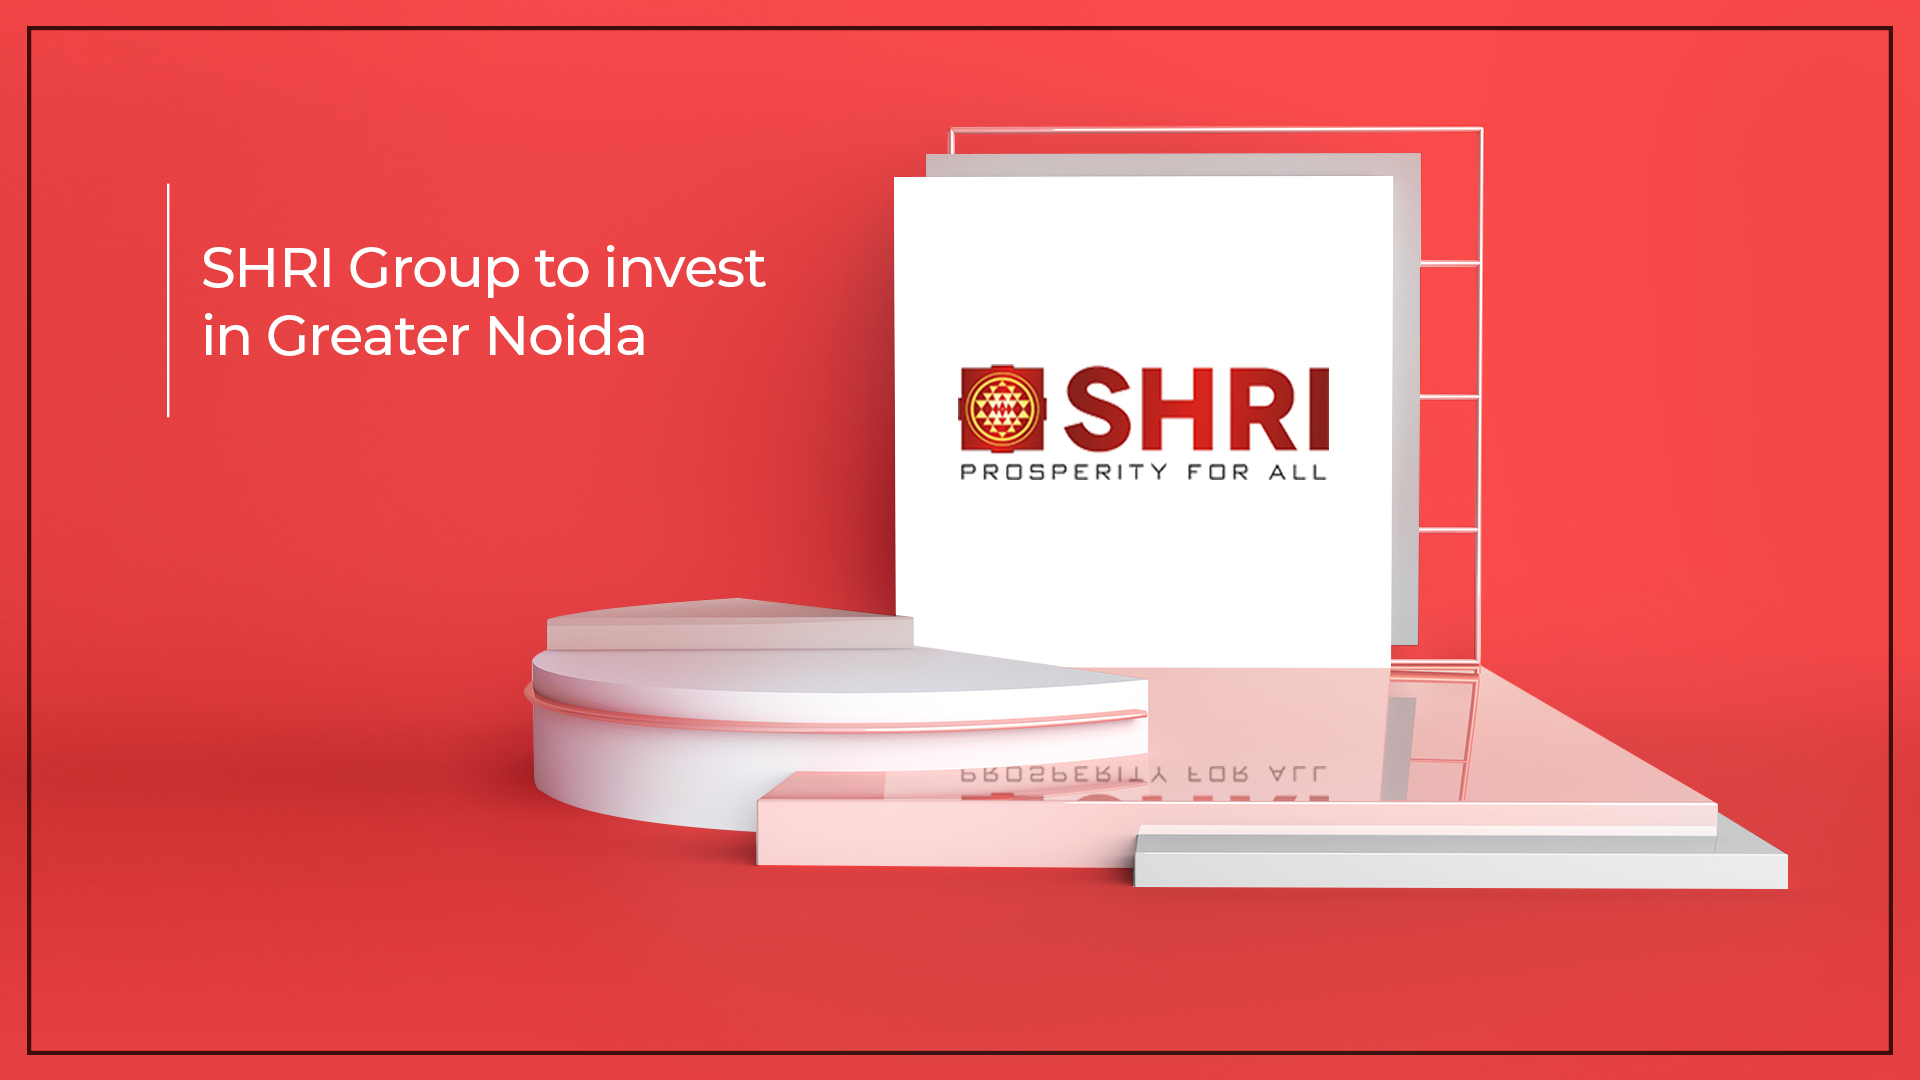 SHRI Group To Invest Rs. 600 Crore In Affordable Housing Project